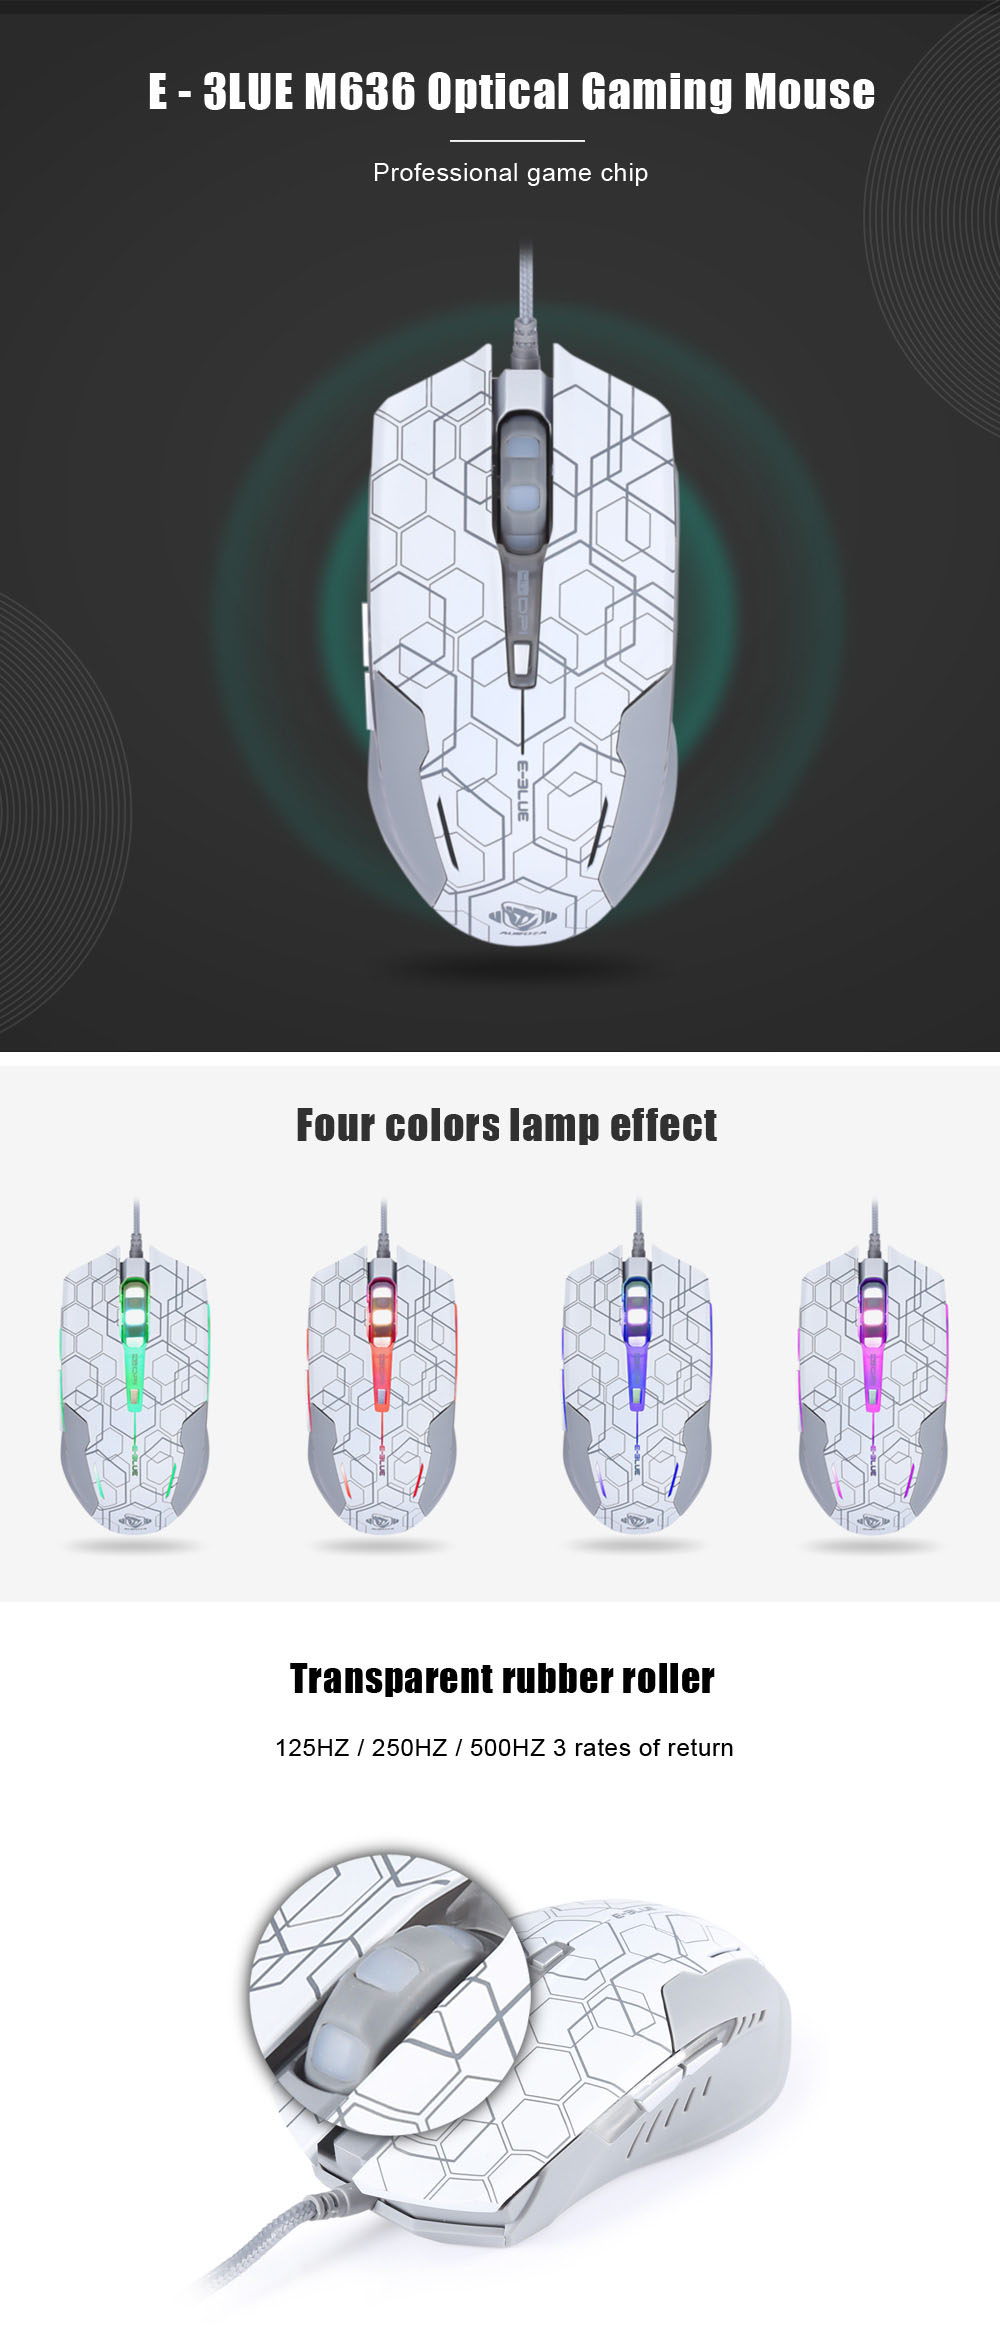 E 3lue M636 Optical Gaming Mouse Star Edition 1442 Free Iron Man Game Wireless Package Contents 1 X English Manual